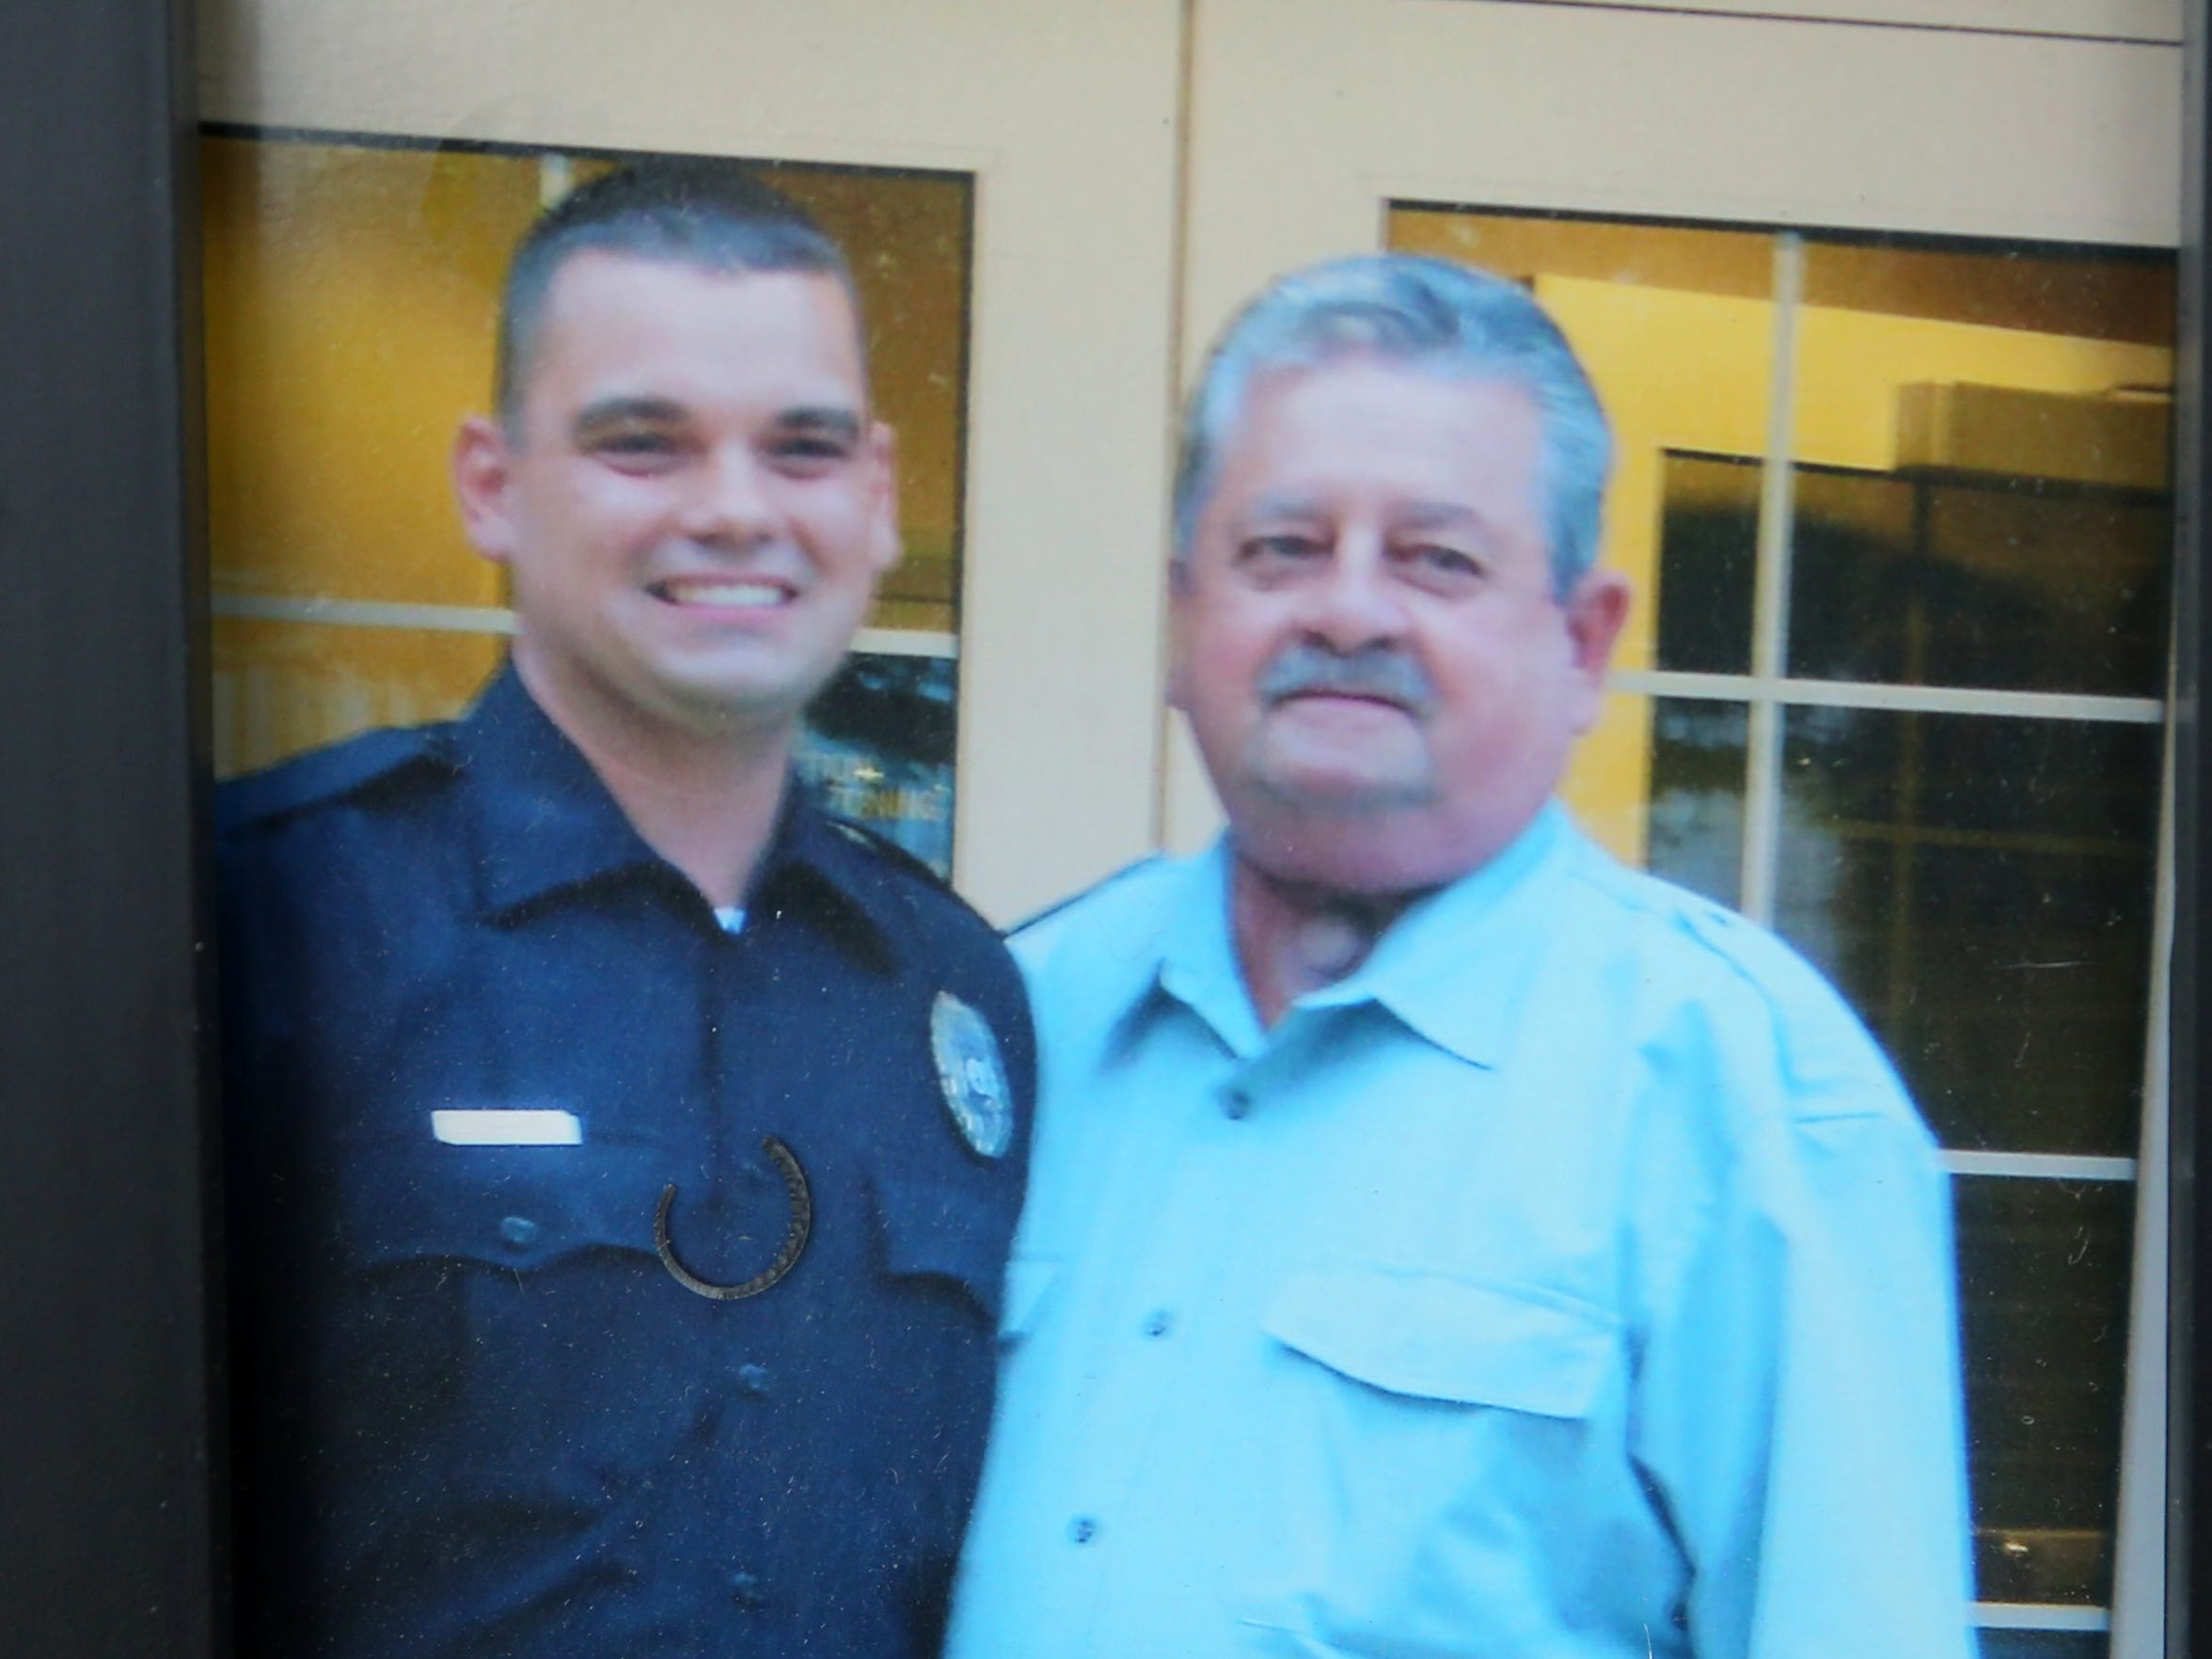 Joseph Wenskoski with his father, retired Edison Police Officer Richie Wenskoski.